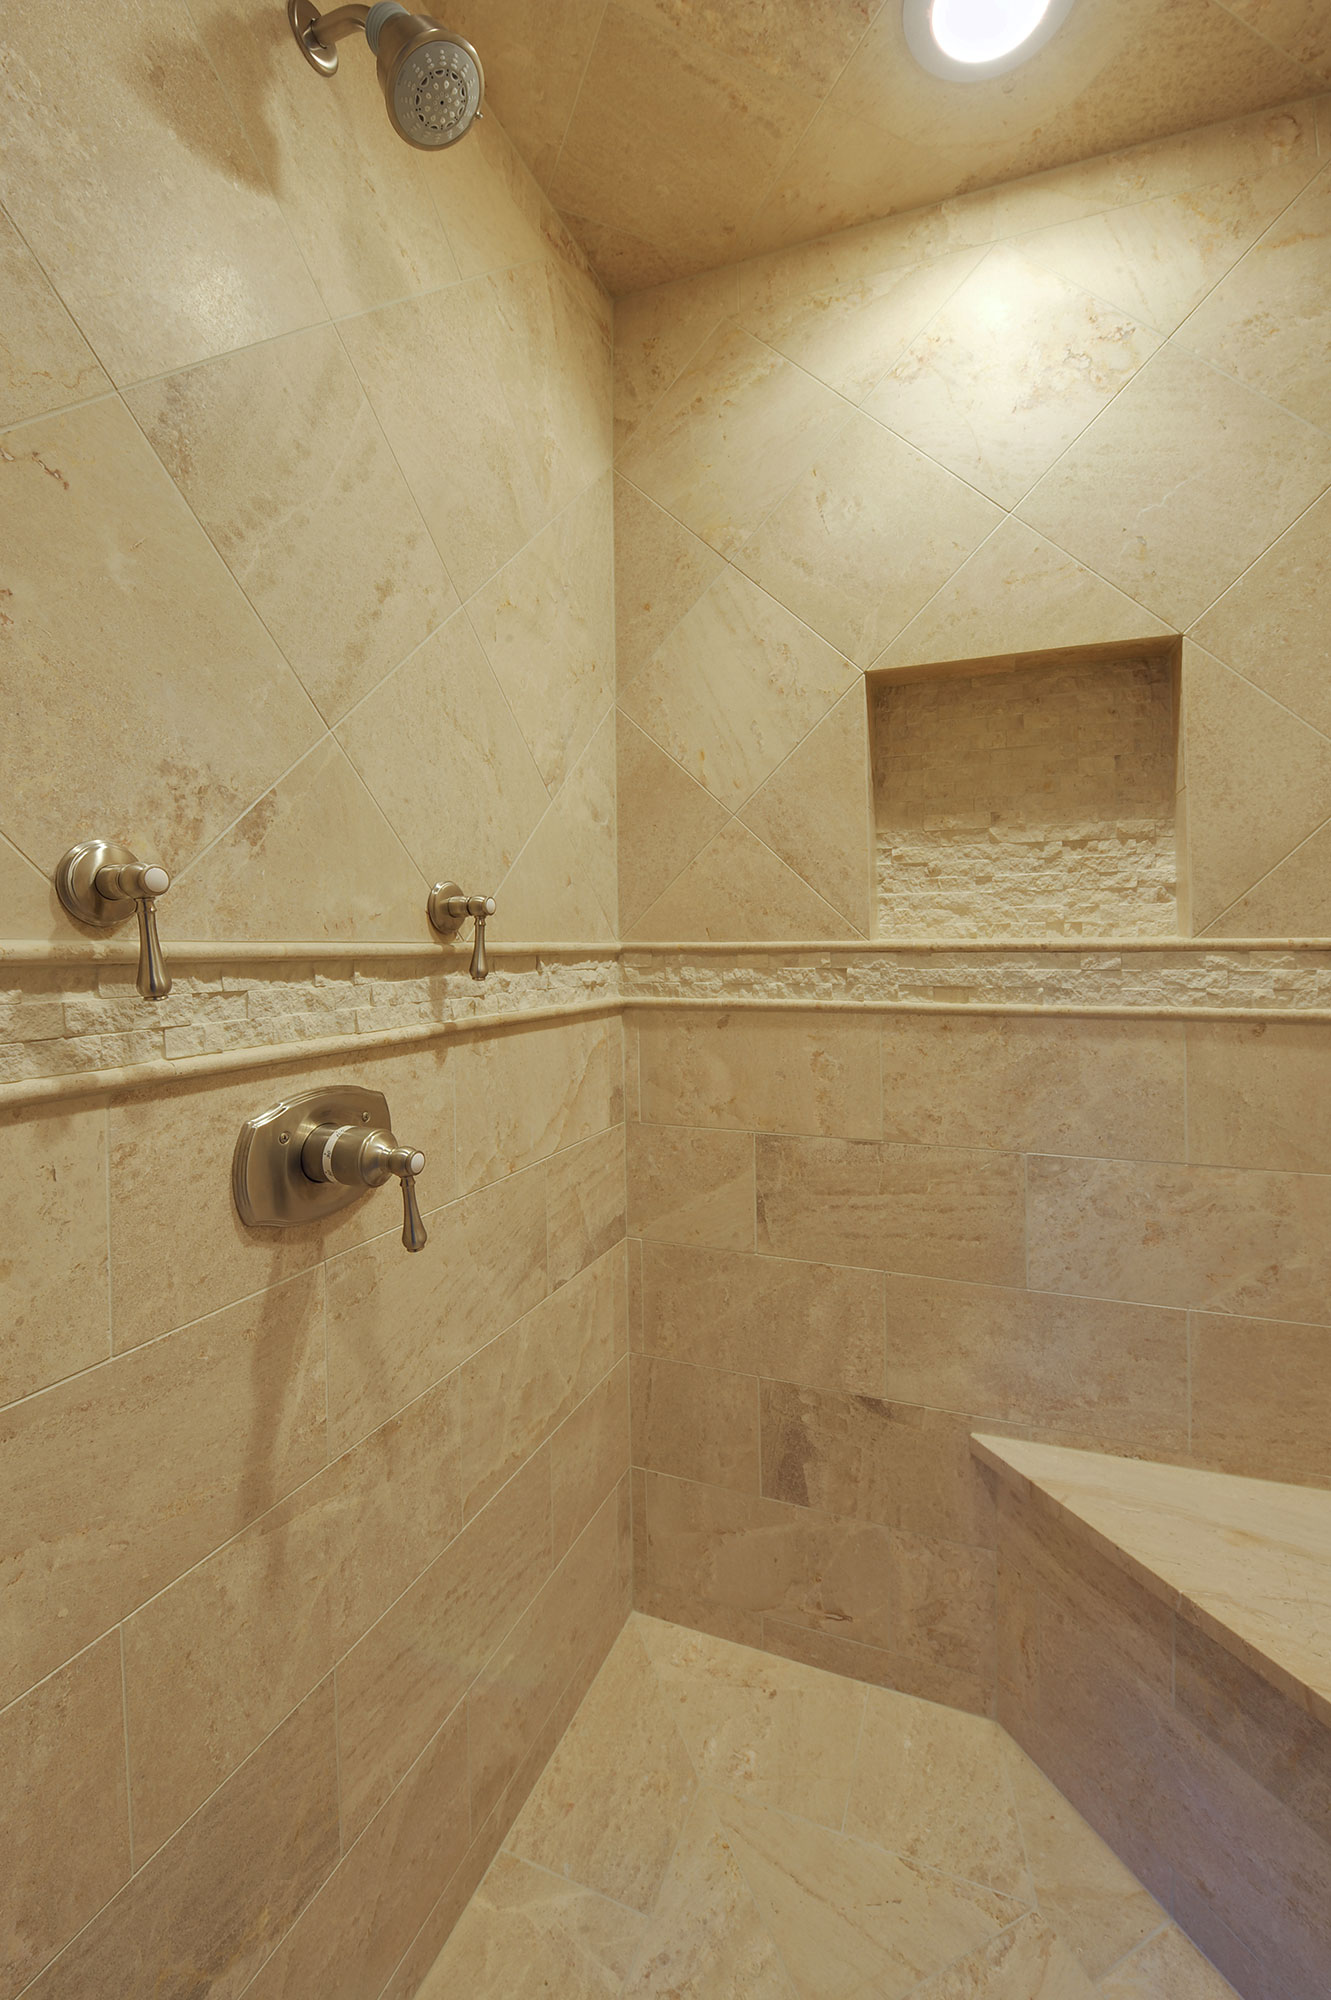 1005-Queens-Glenview - MasterBathroom-Shower - Globex Developments Custom Homes